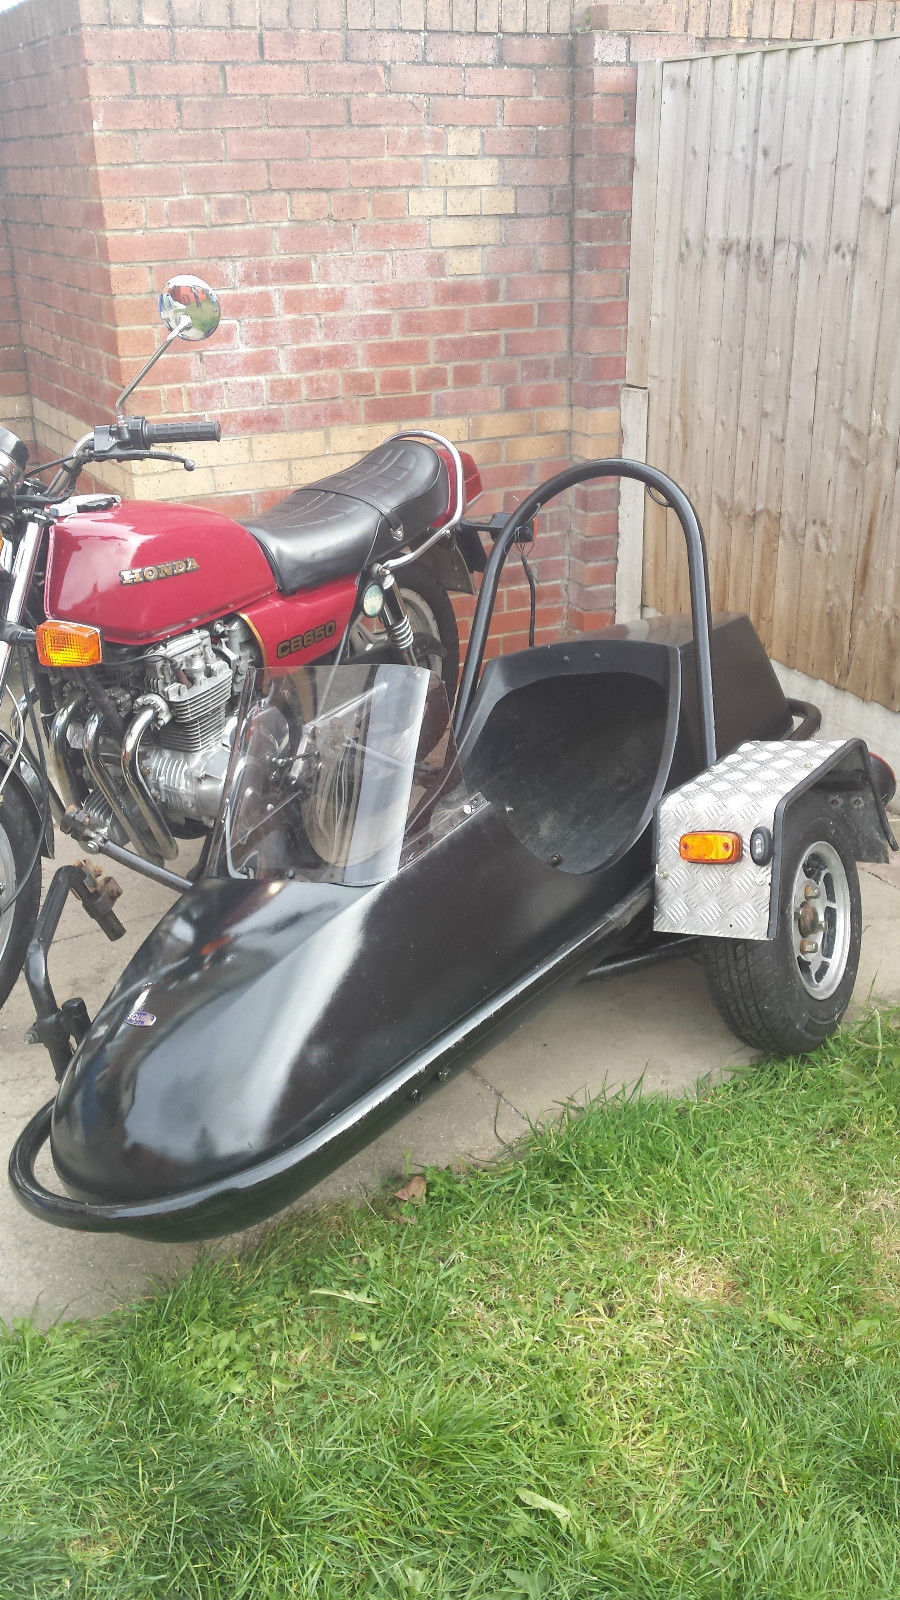 Honda Cb650z Motorcycle With Squire Sidecar Outfit